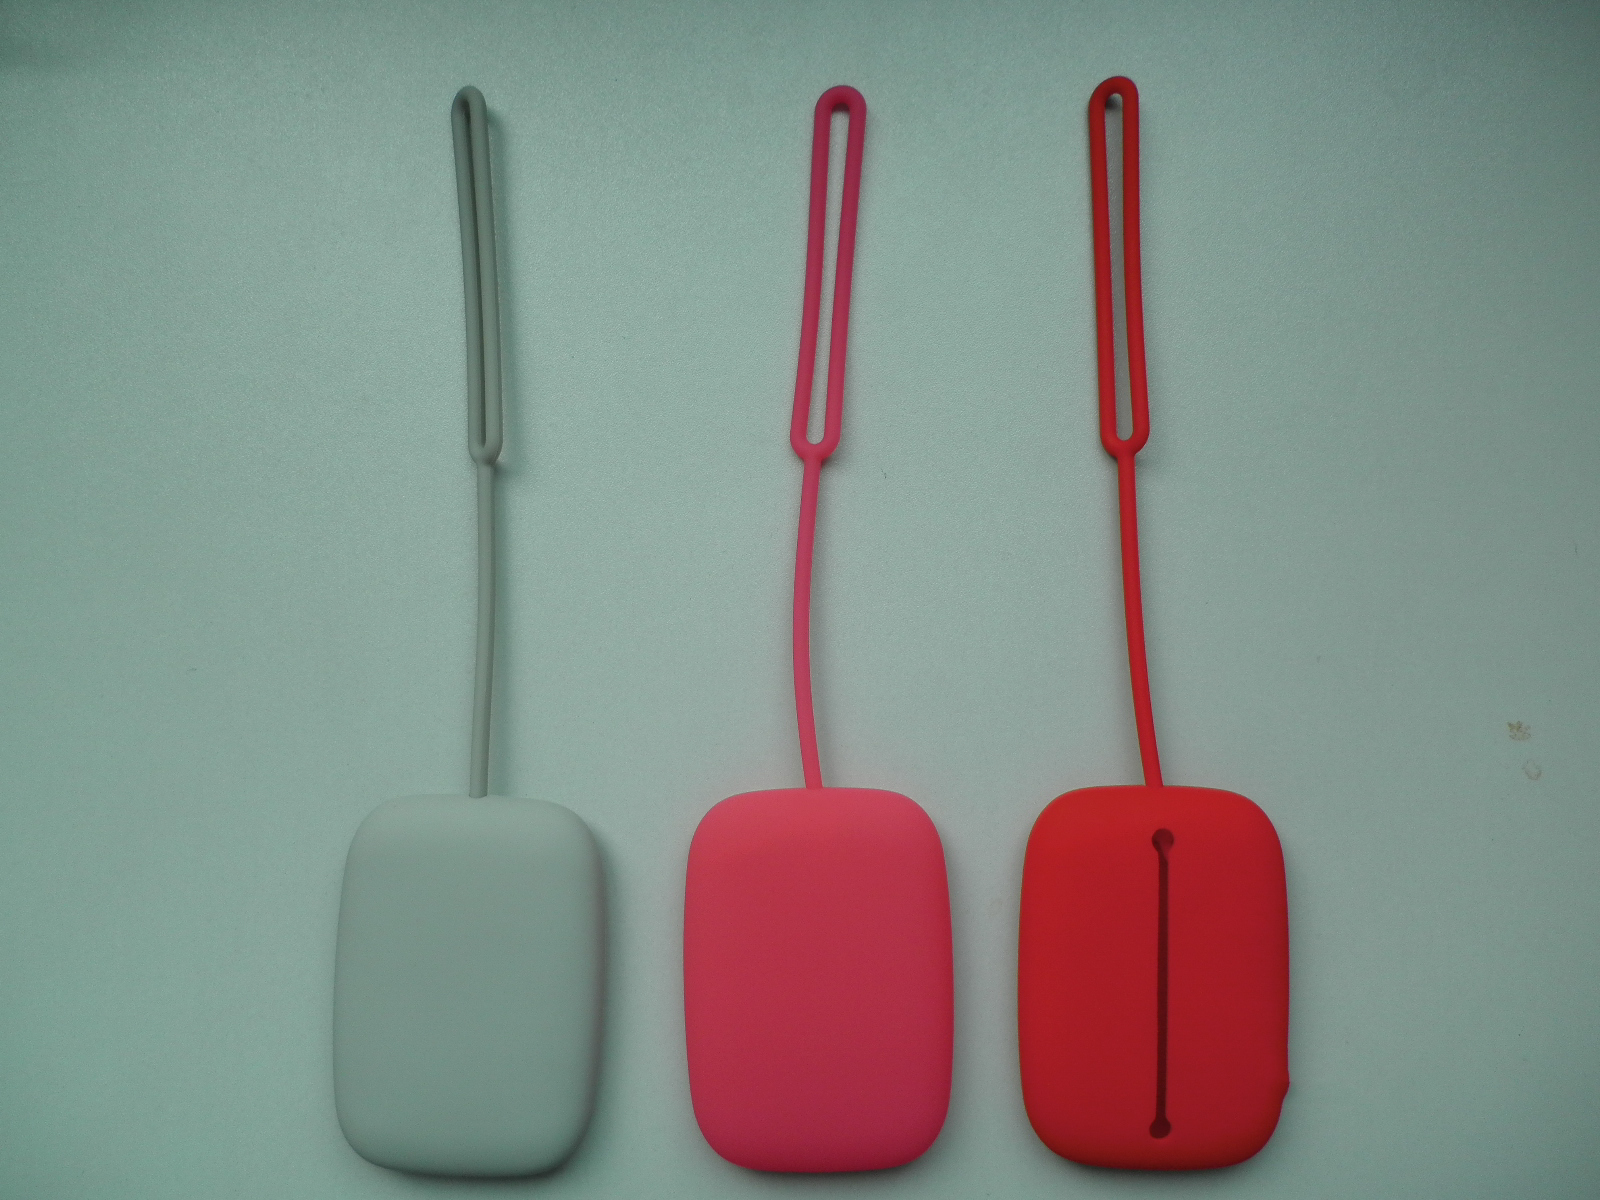 http://www.refinehksilicone.cn/data/images/product/20180418101635_718.JPG